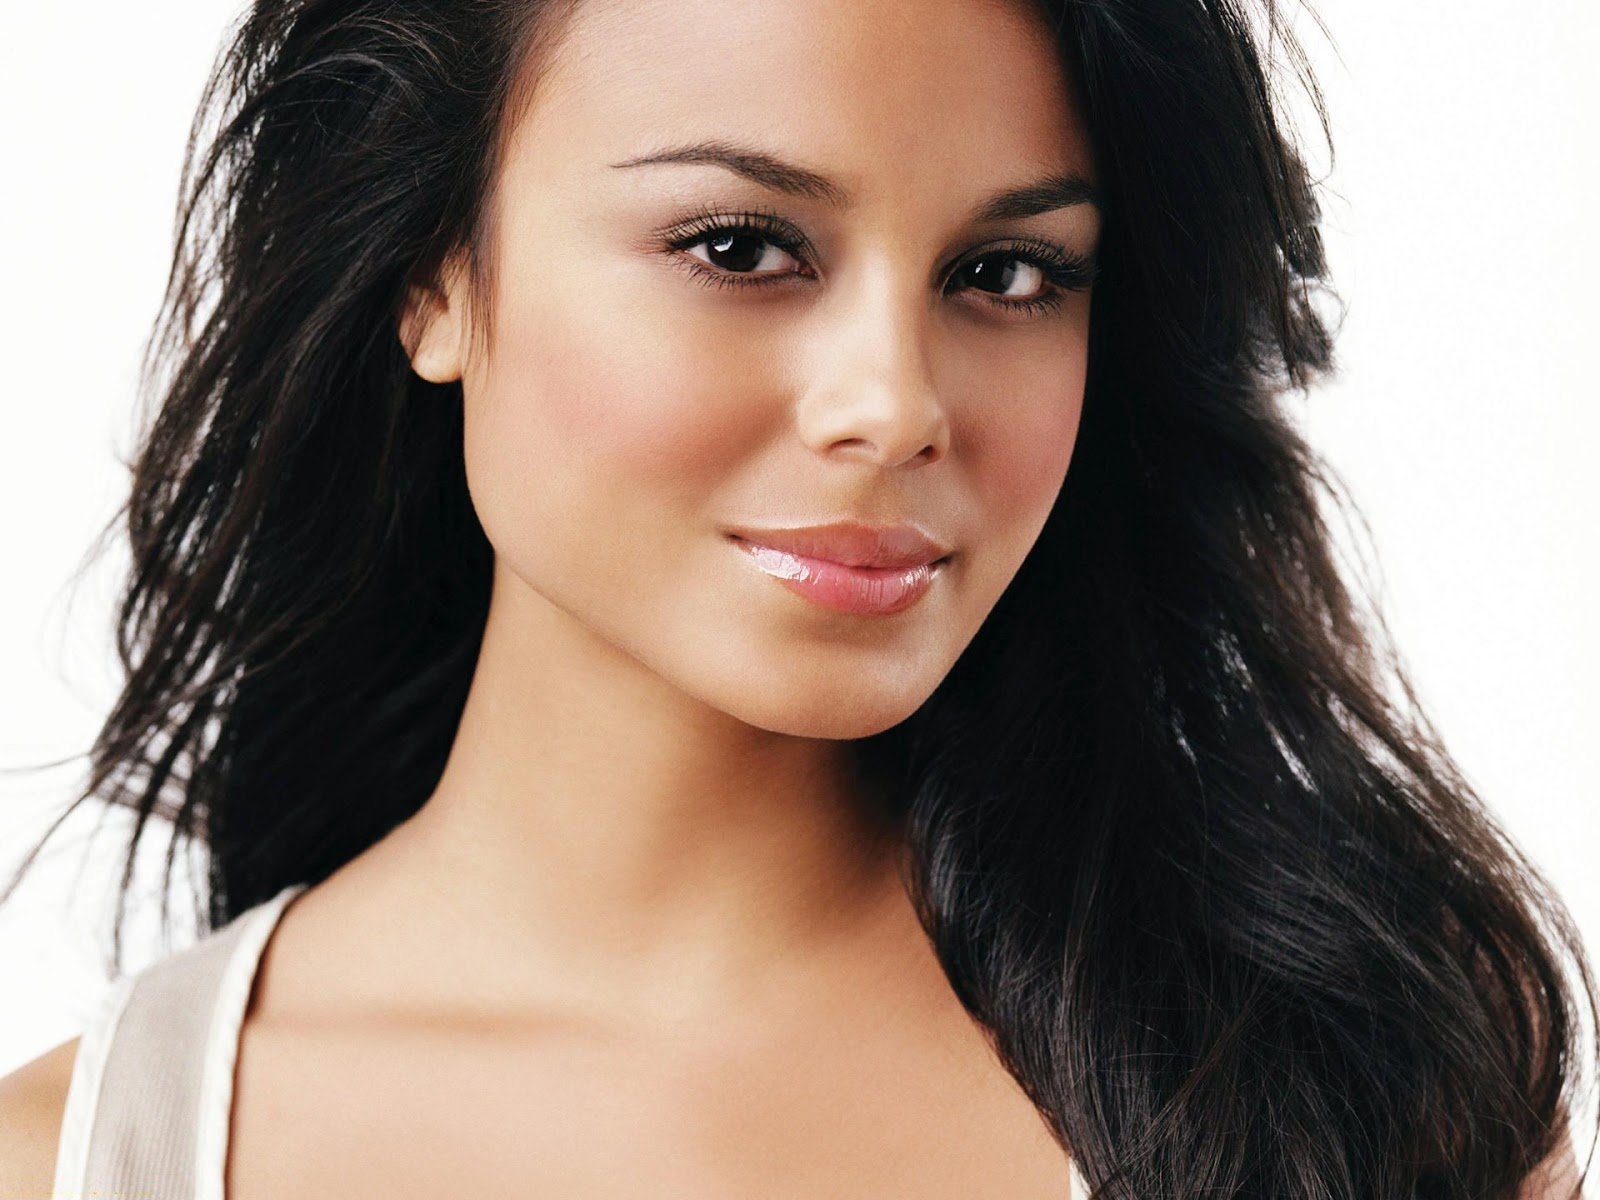 Nathalie Kelley Hd Wallpapers Free Download